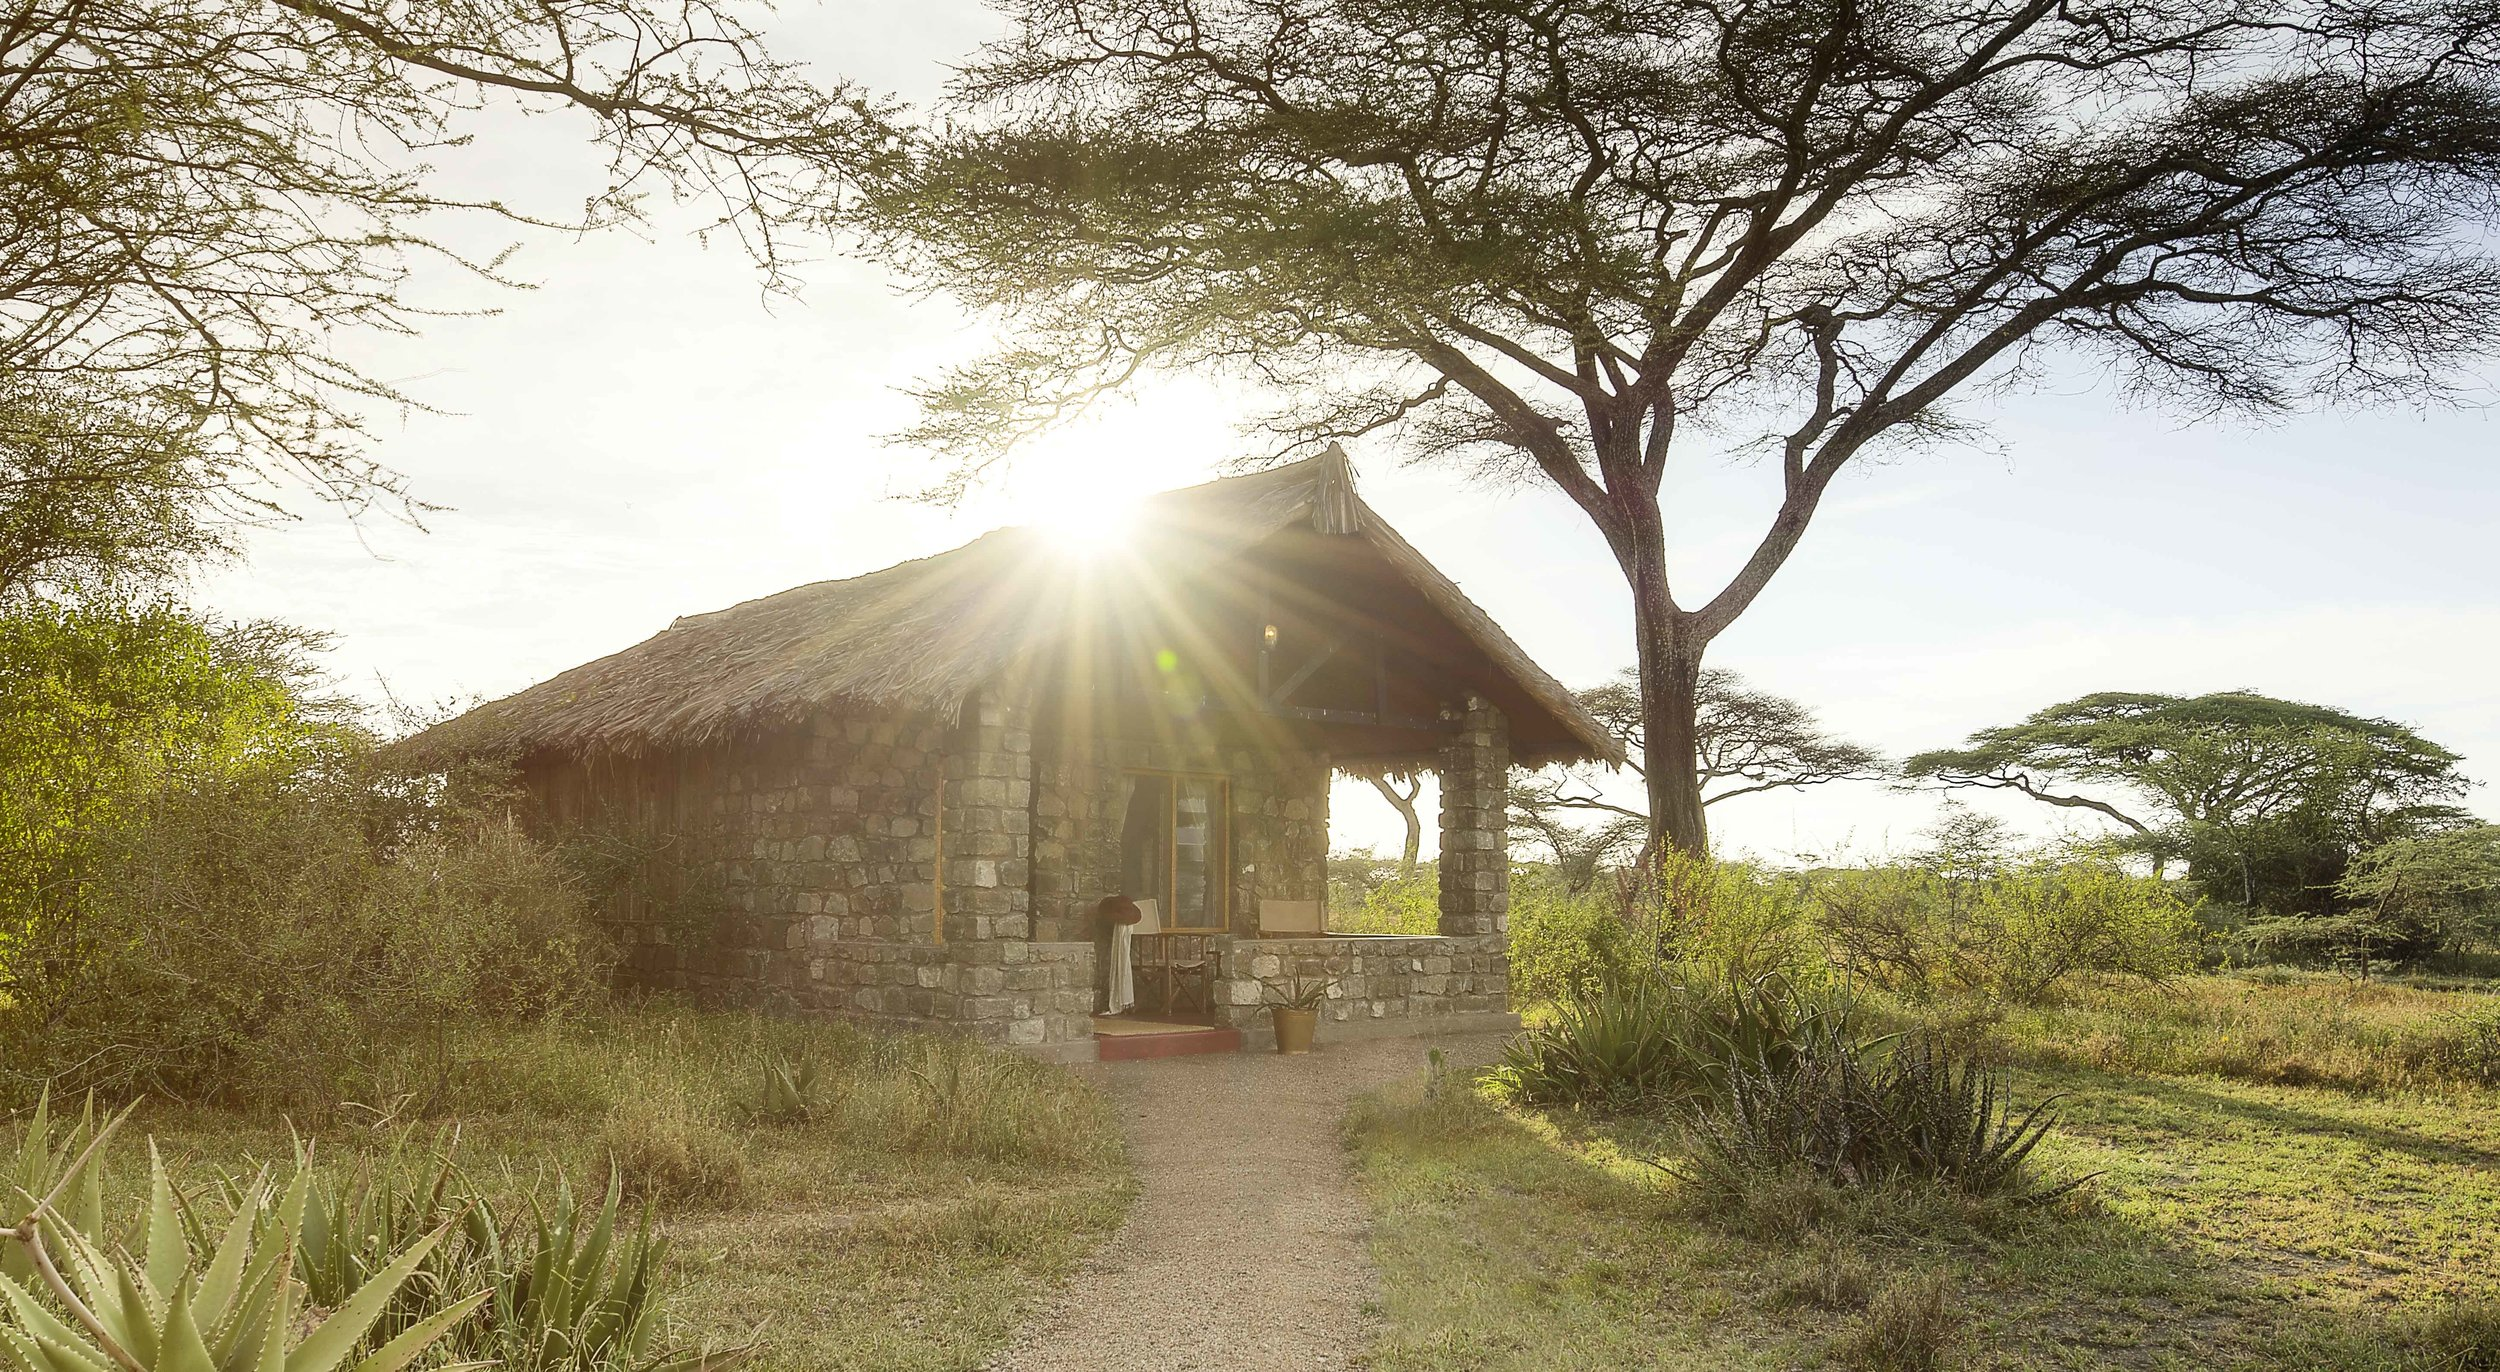 Ndutu Safari Lodge -TANZANIA - A traditional safari lodge in an outstanding wildlife area.We have redeveloped Ndutu's website, marketing materials and created a new brand concept for this well-known and much-loved safari lodge.